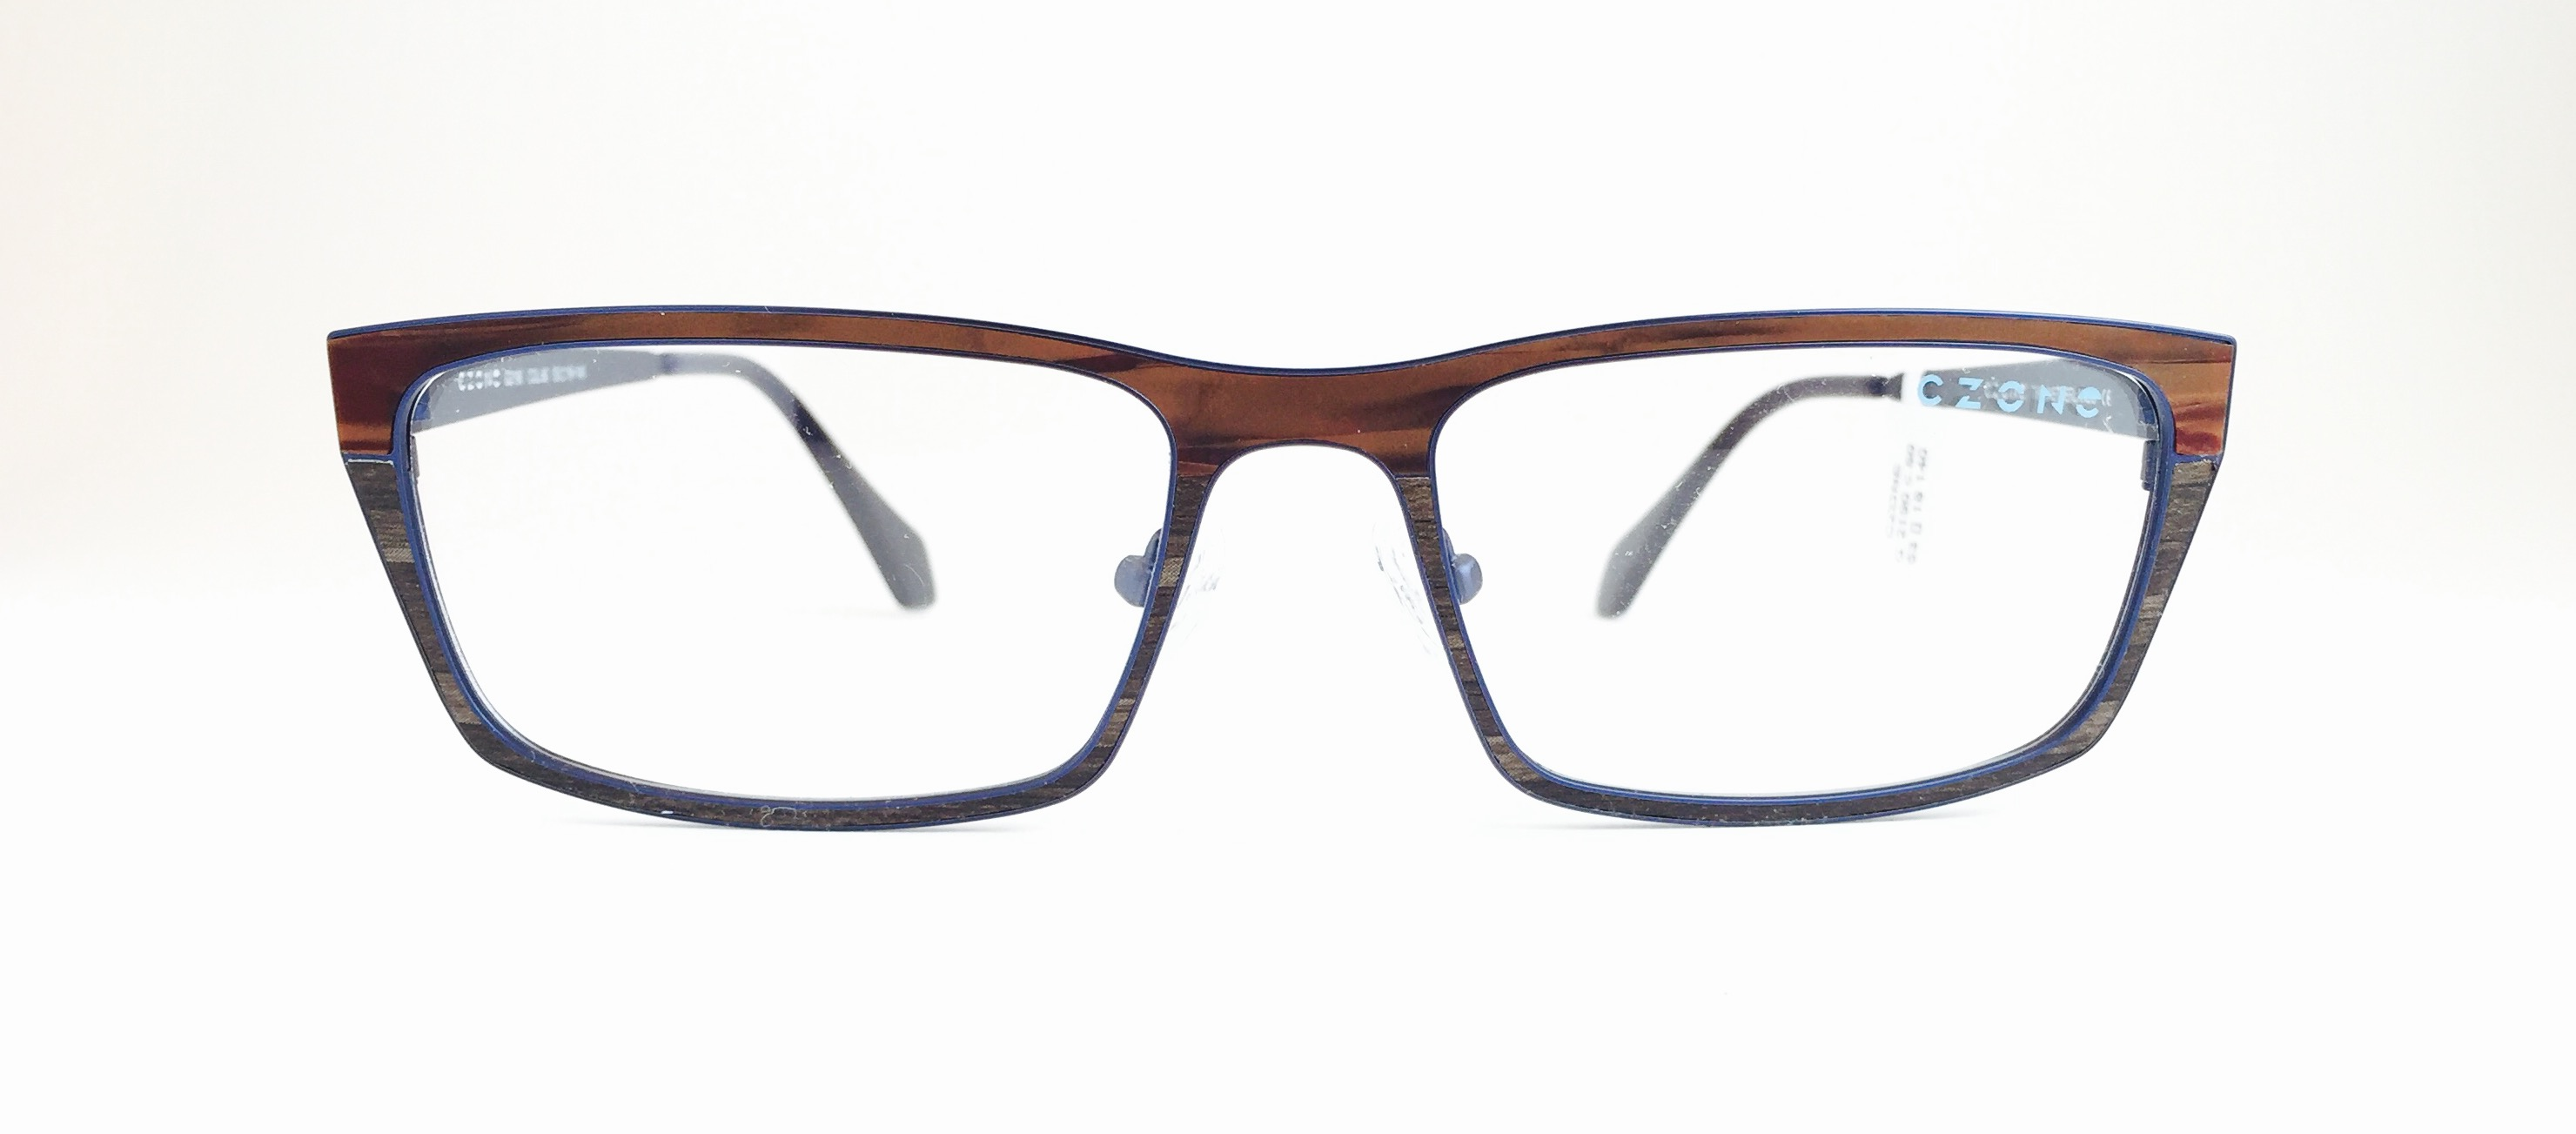 C-Zone eyeglasses in Providence Providence Optical